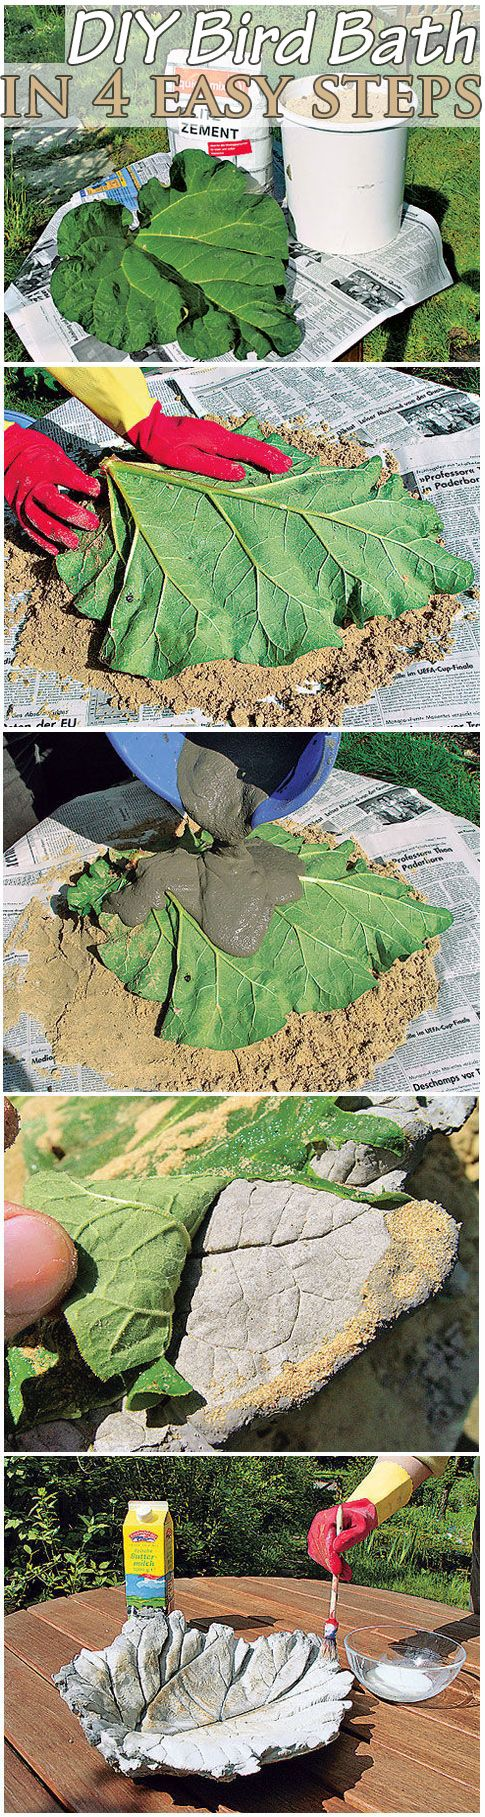 You can make a beautiful bird bath for your garden in just minutes. For this eas...